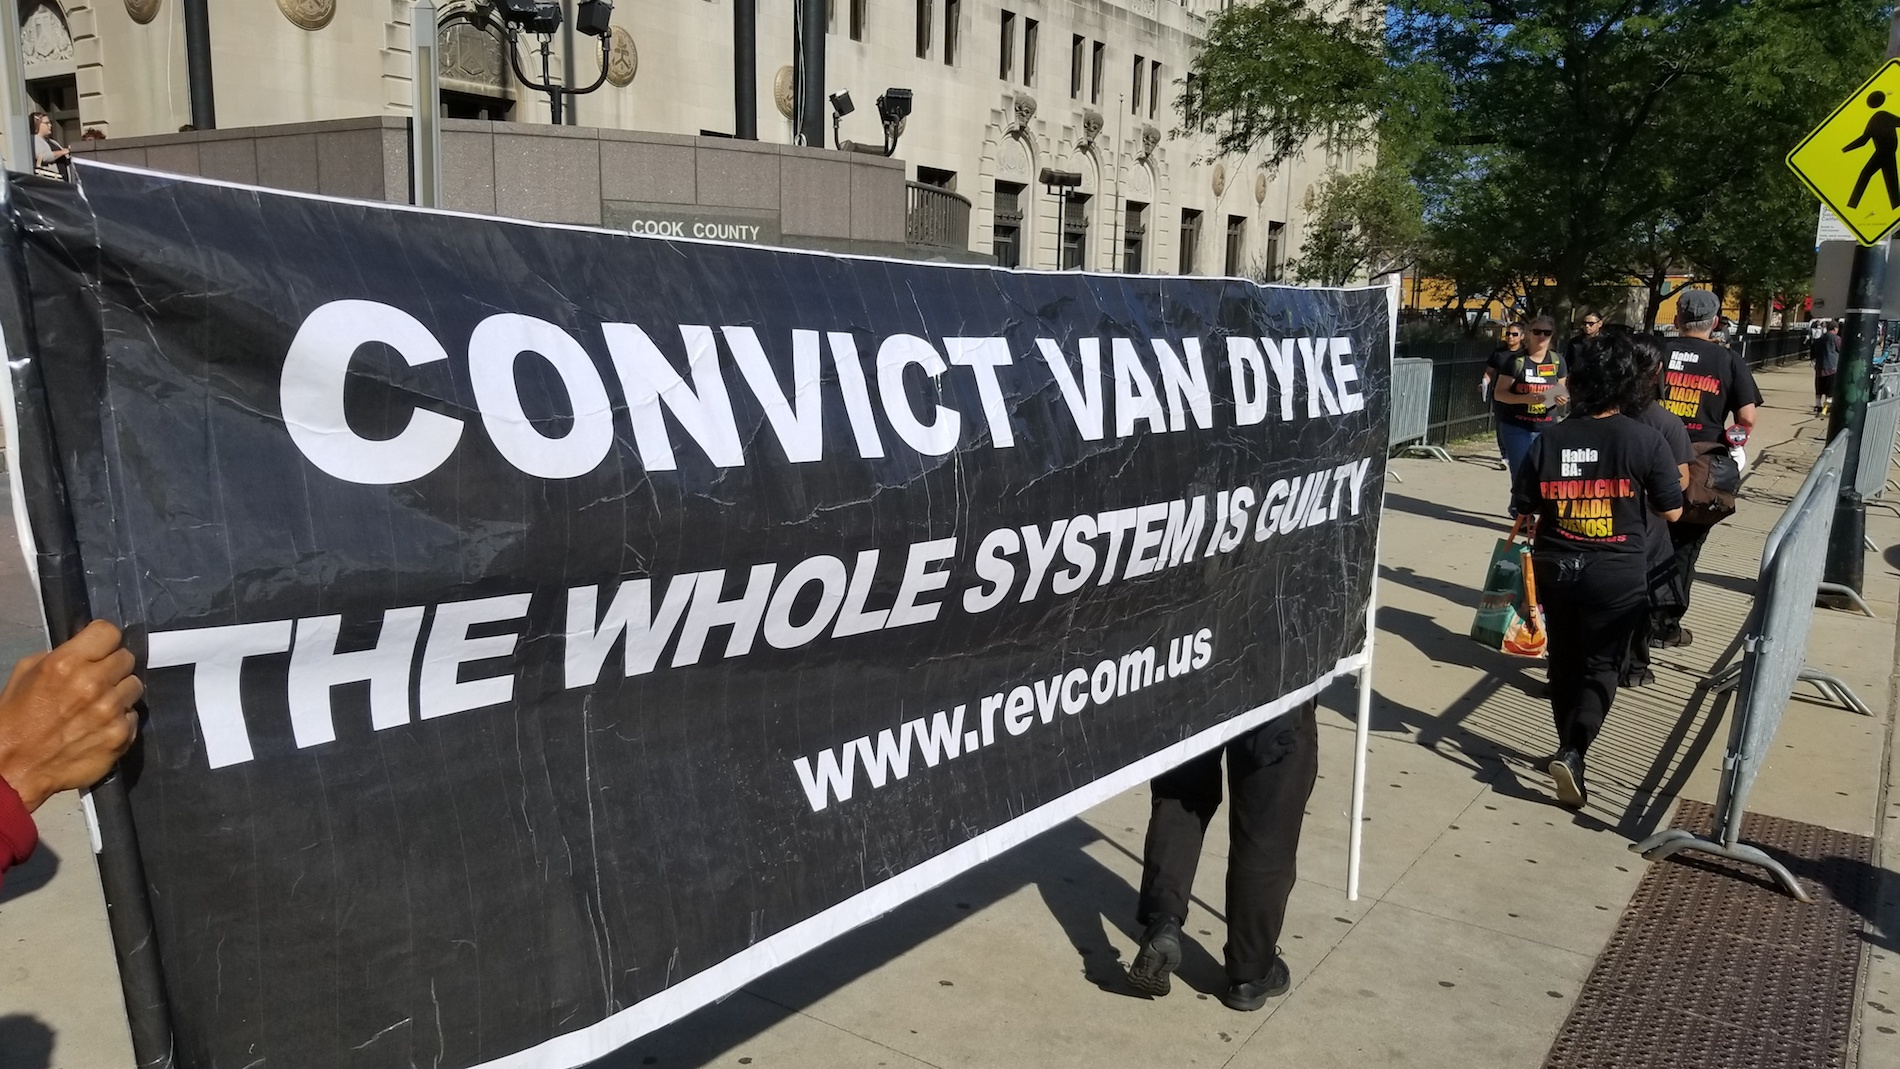 Protesters stand outside the Leighton Criminal Court building Monday, Sept. 10, 2018, the first day of jury selection in Jason Van Dyke's murder trial. (Matt Masterson / Chicago Tonight)